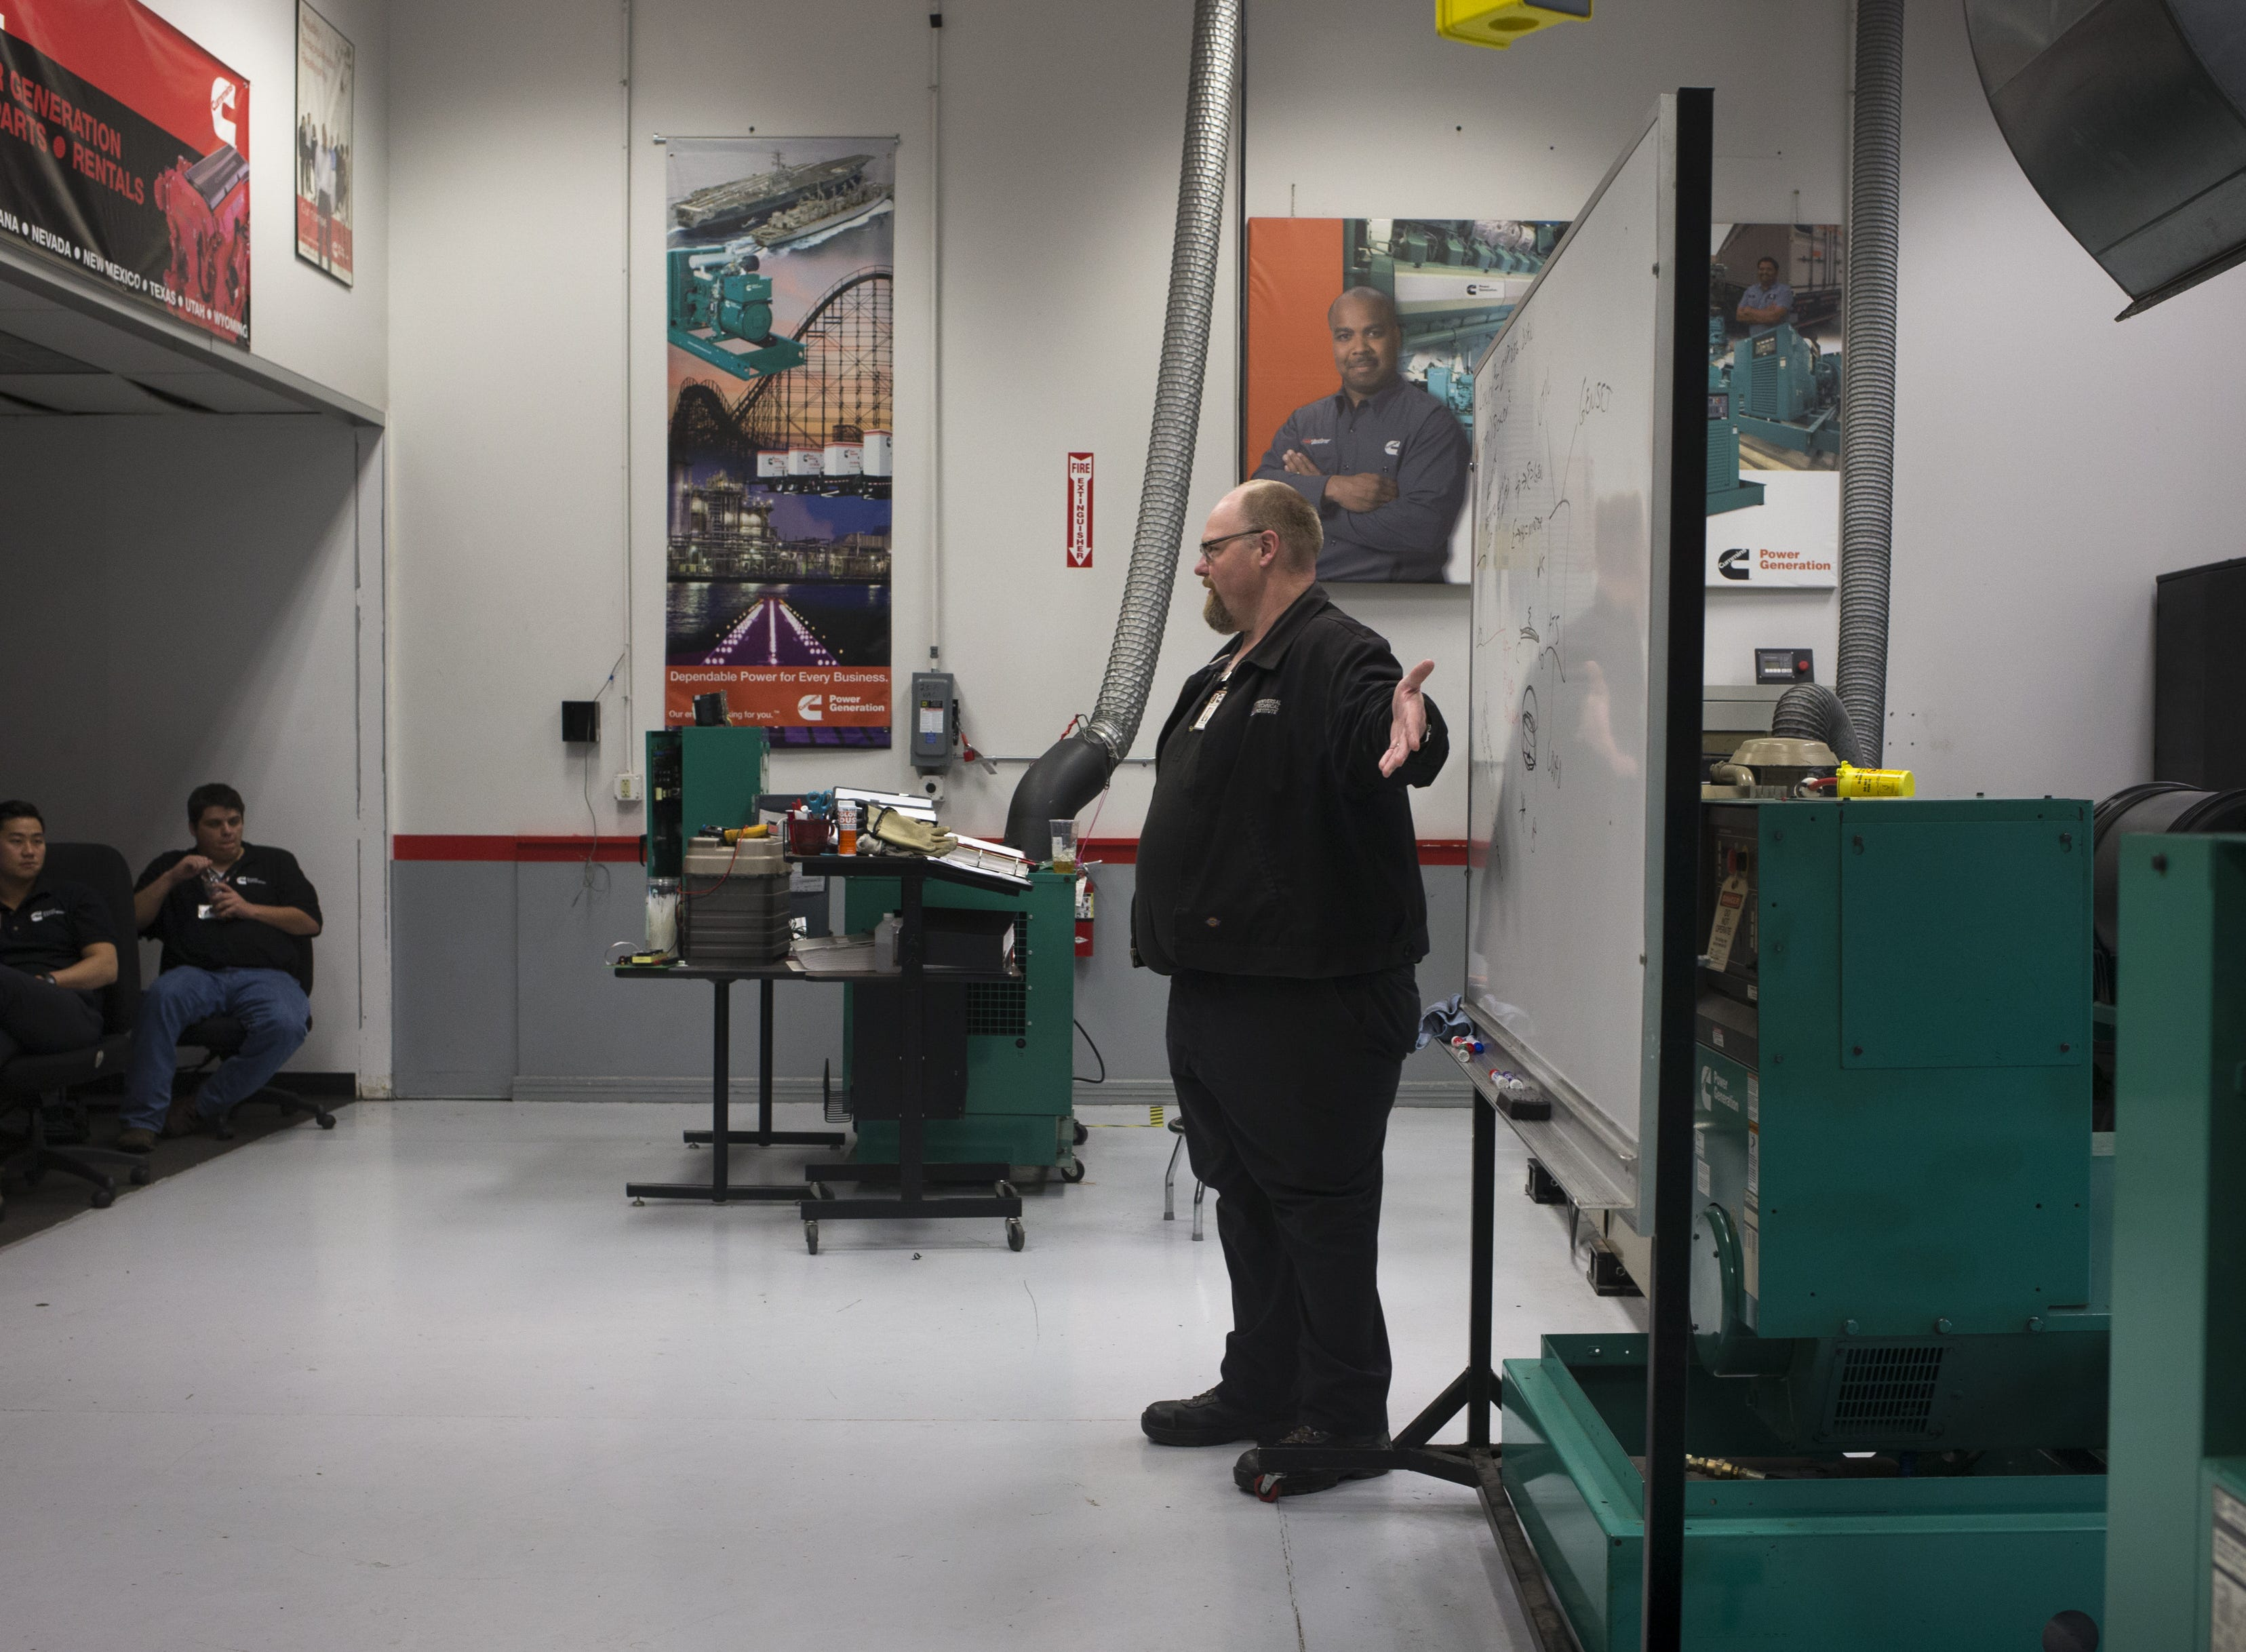 Jason Mosler teaches students in the generator lab, Jan. 17, 2019, at the Universal Technical Institute, 10695 W. Pierce St., Avondale.